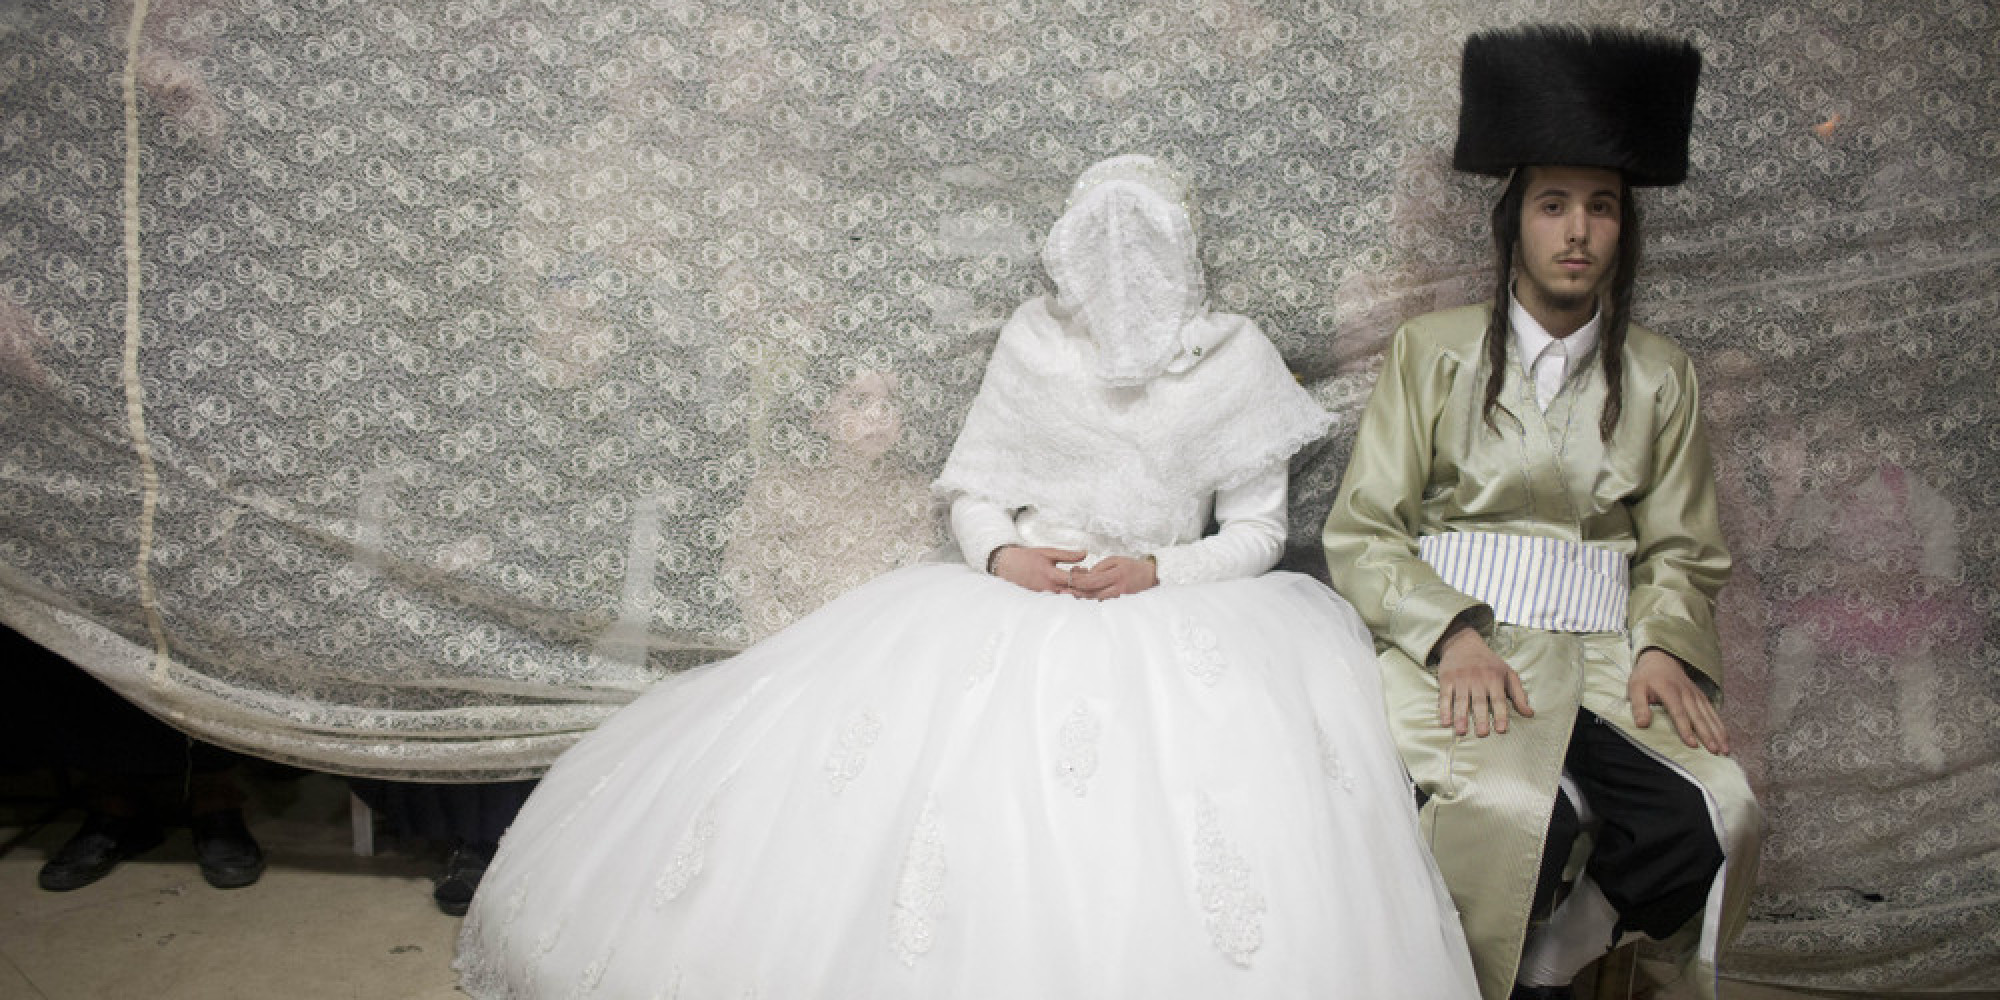 Haredi Jews In Israel: 19 Stunning Pictures Of An Ultra-Orthodox Jewish Wedding